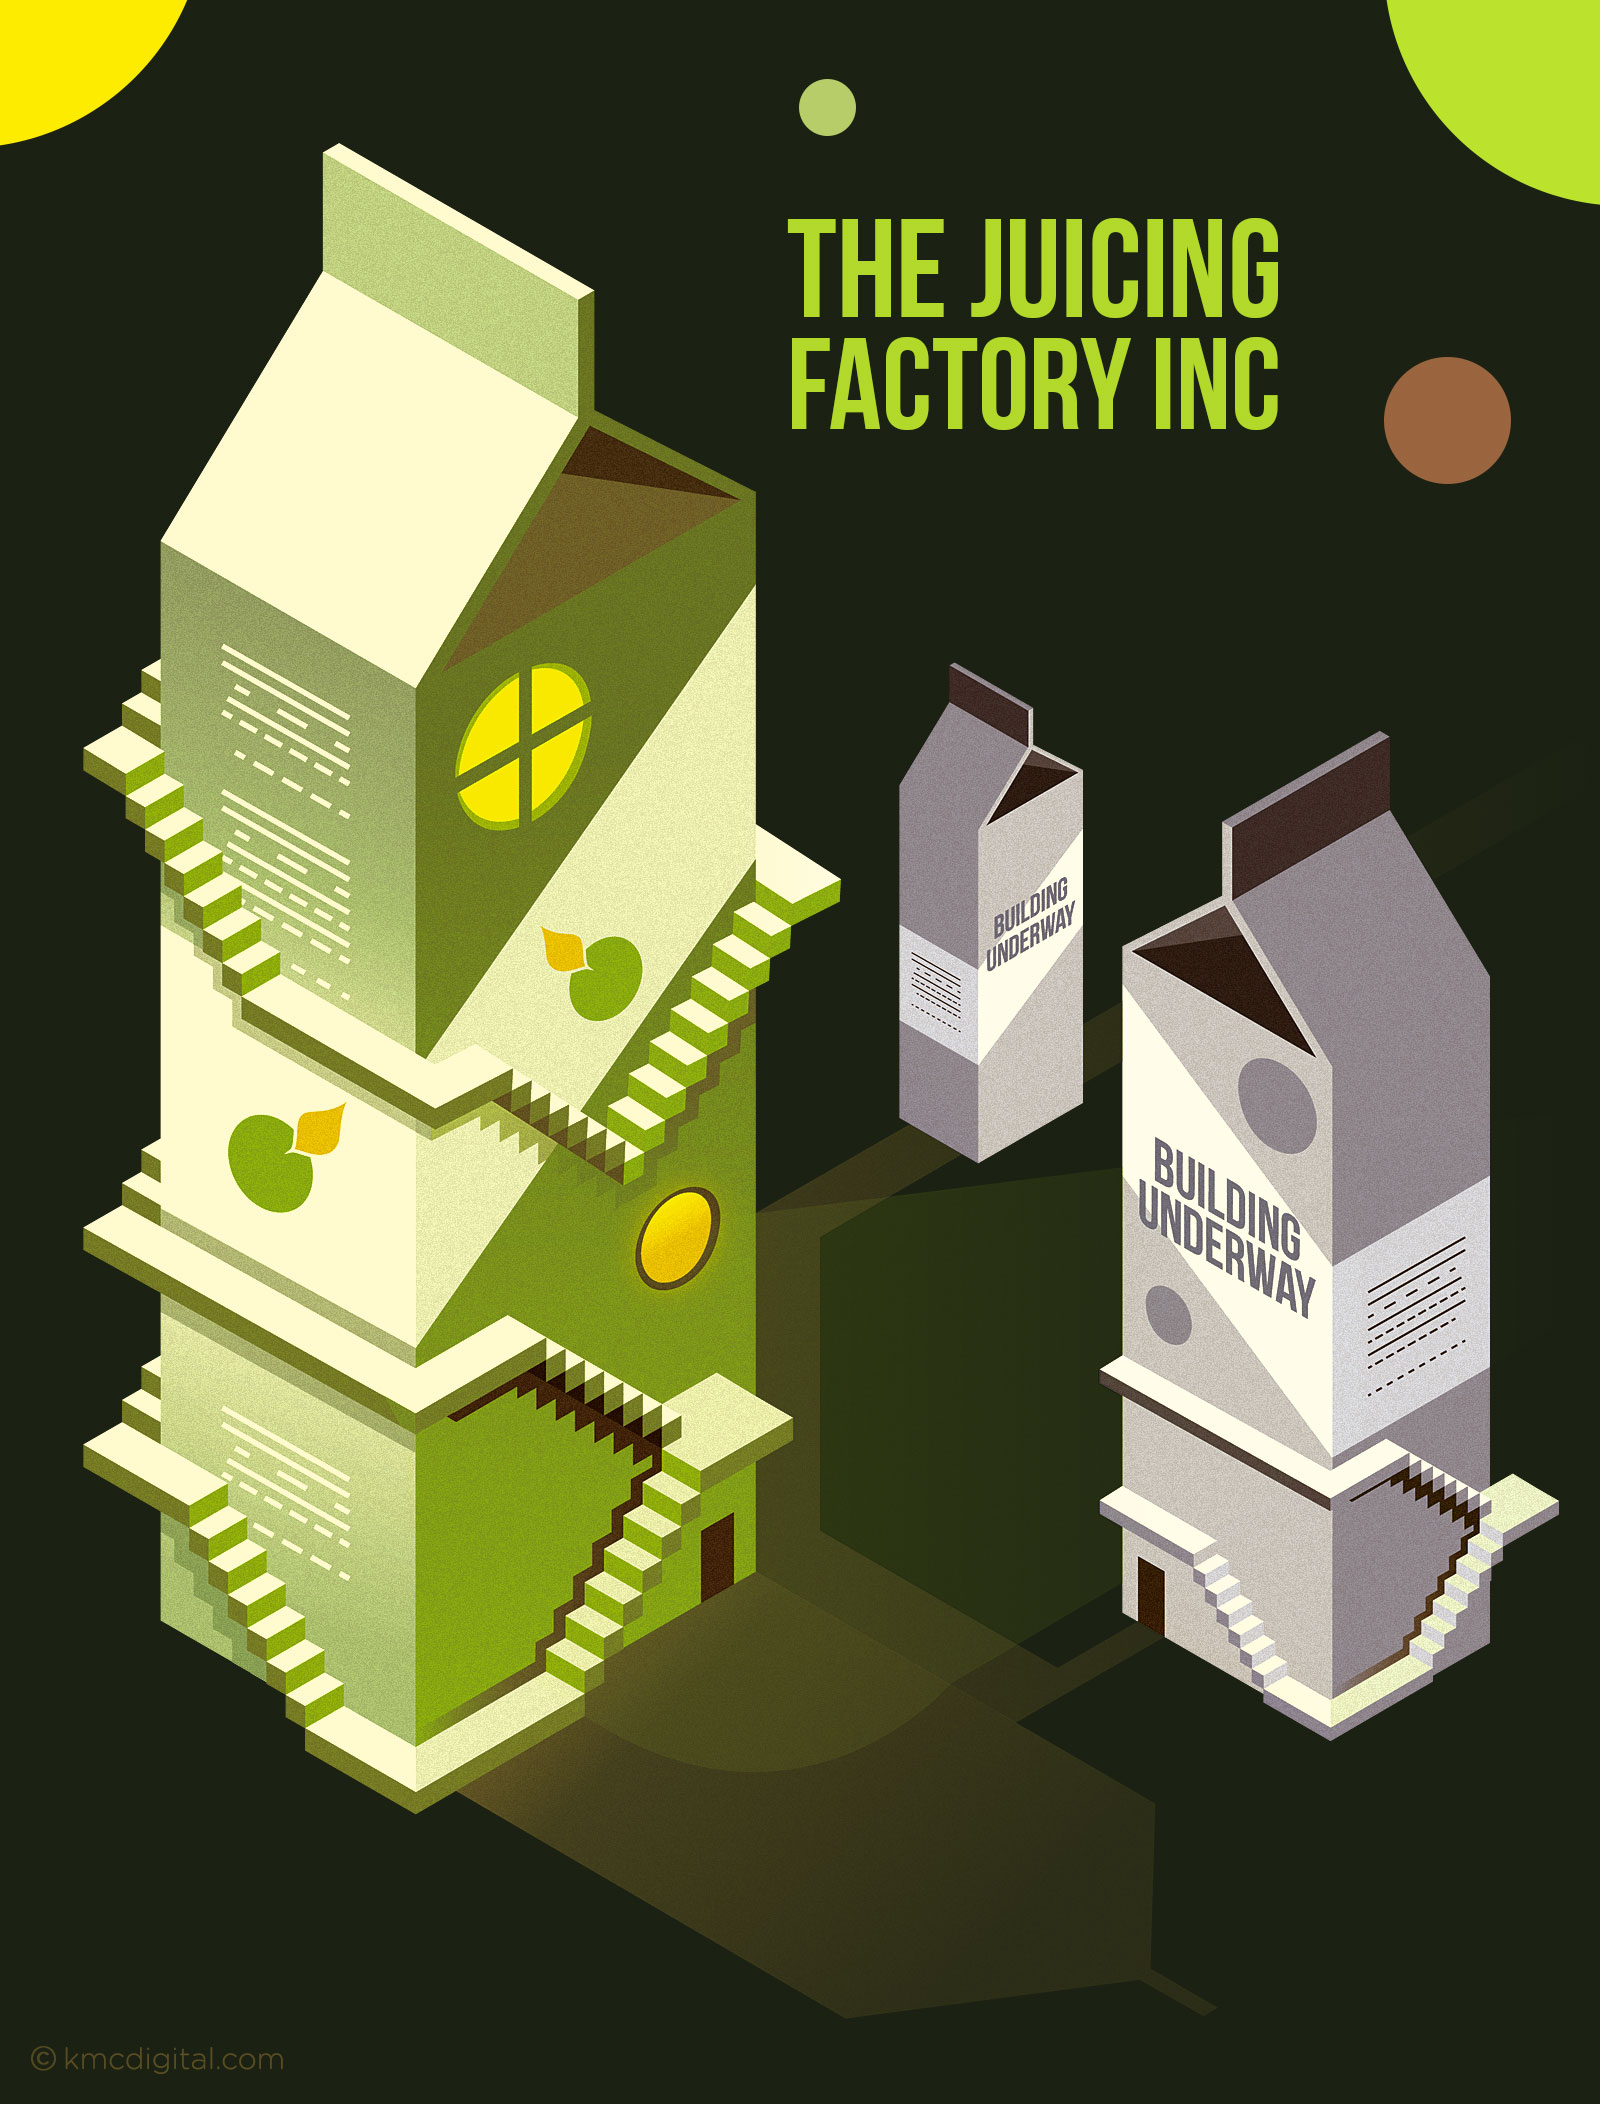 Juicing Factory Illustration